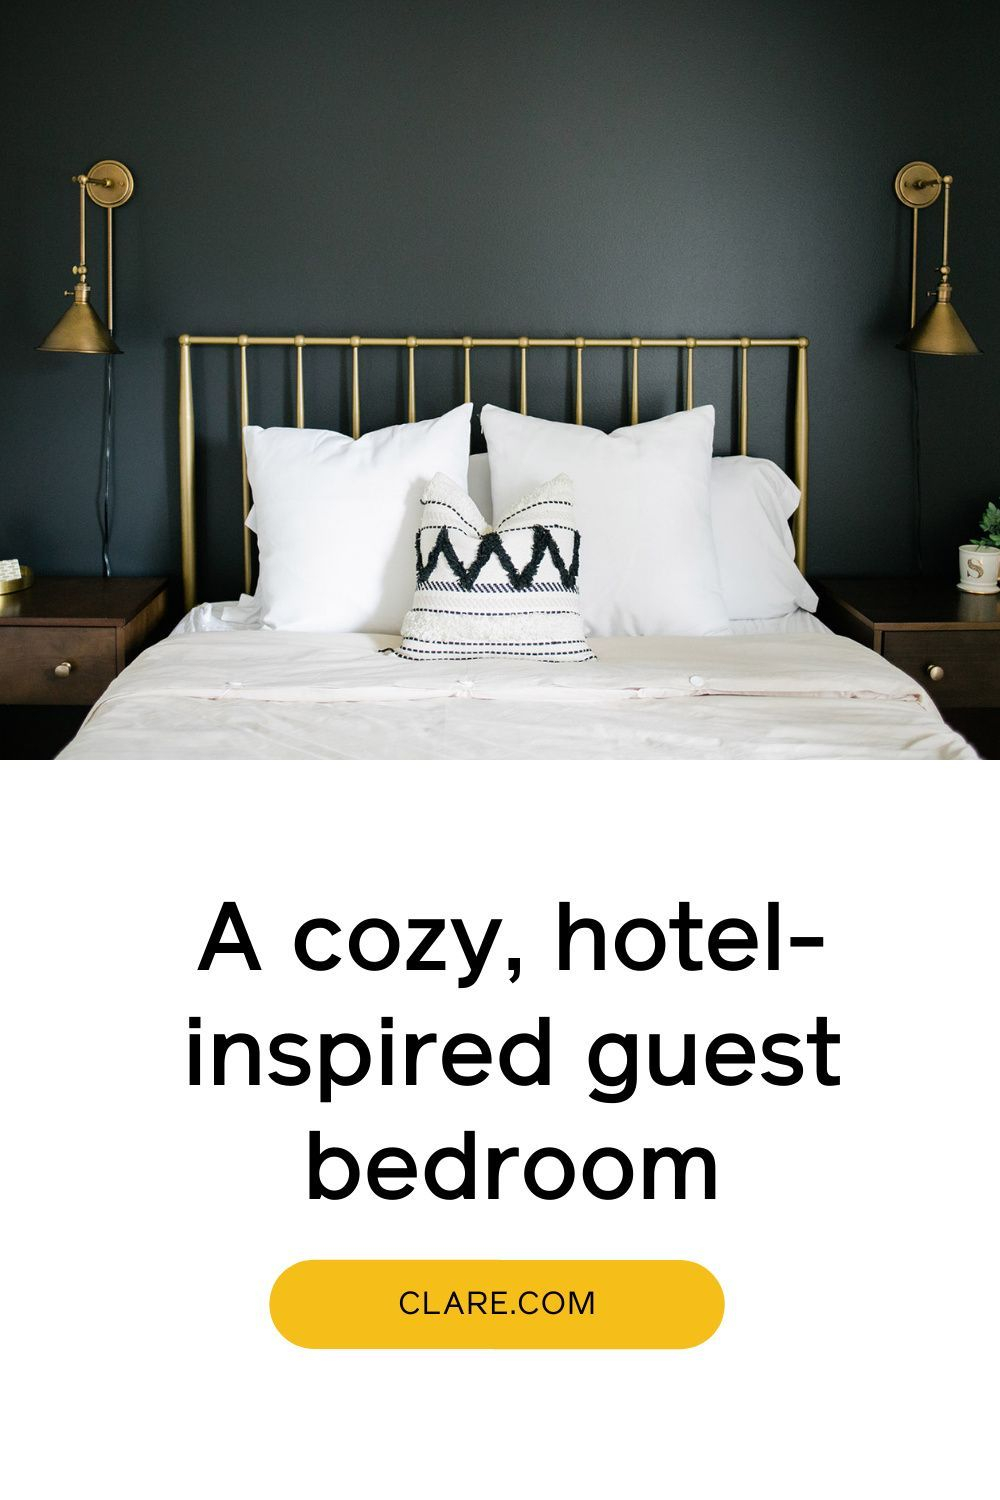 How To Style A Black Accent Wall In A Bedroom Clare In 2021 Black Accent Walls Accent Wall Bedroom Accent Wall